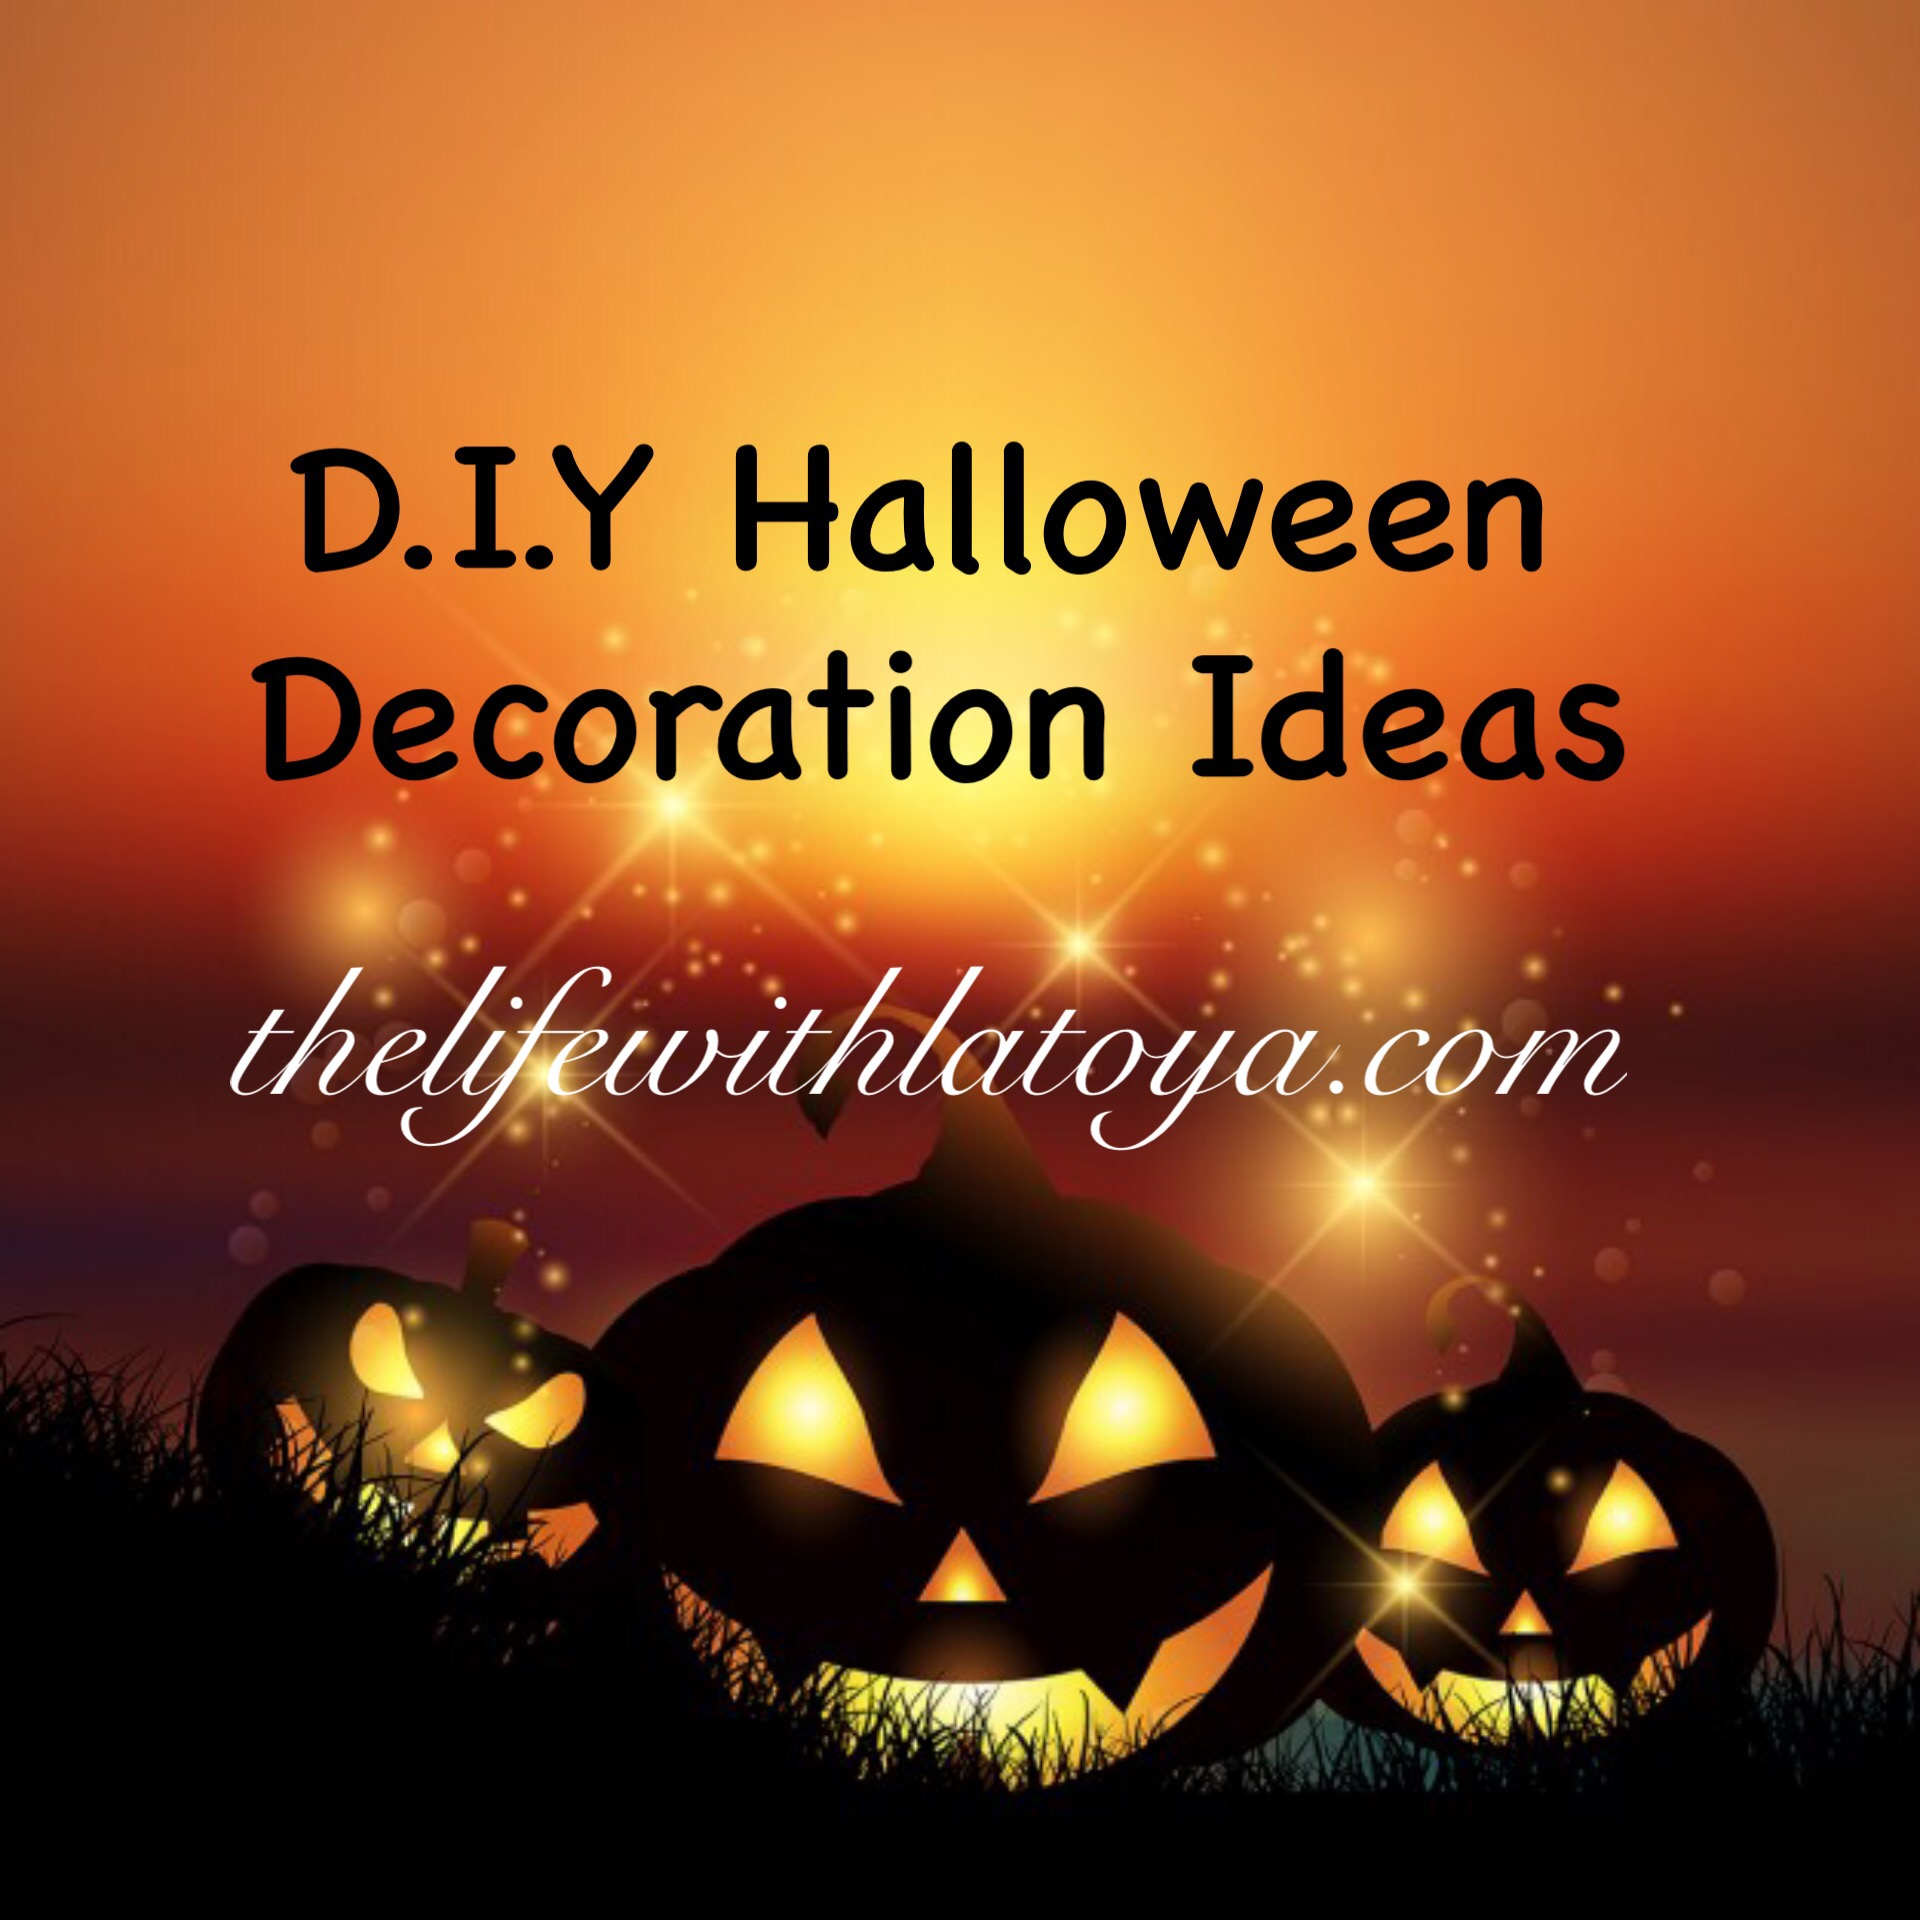 Happy Halloween Tips On Home Decoration 1: D.I.Y Halloween Decoration Ideas